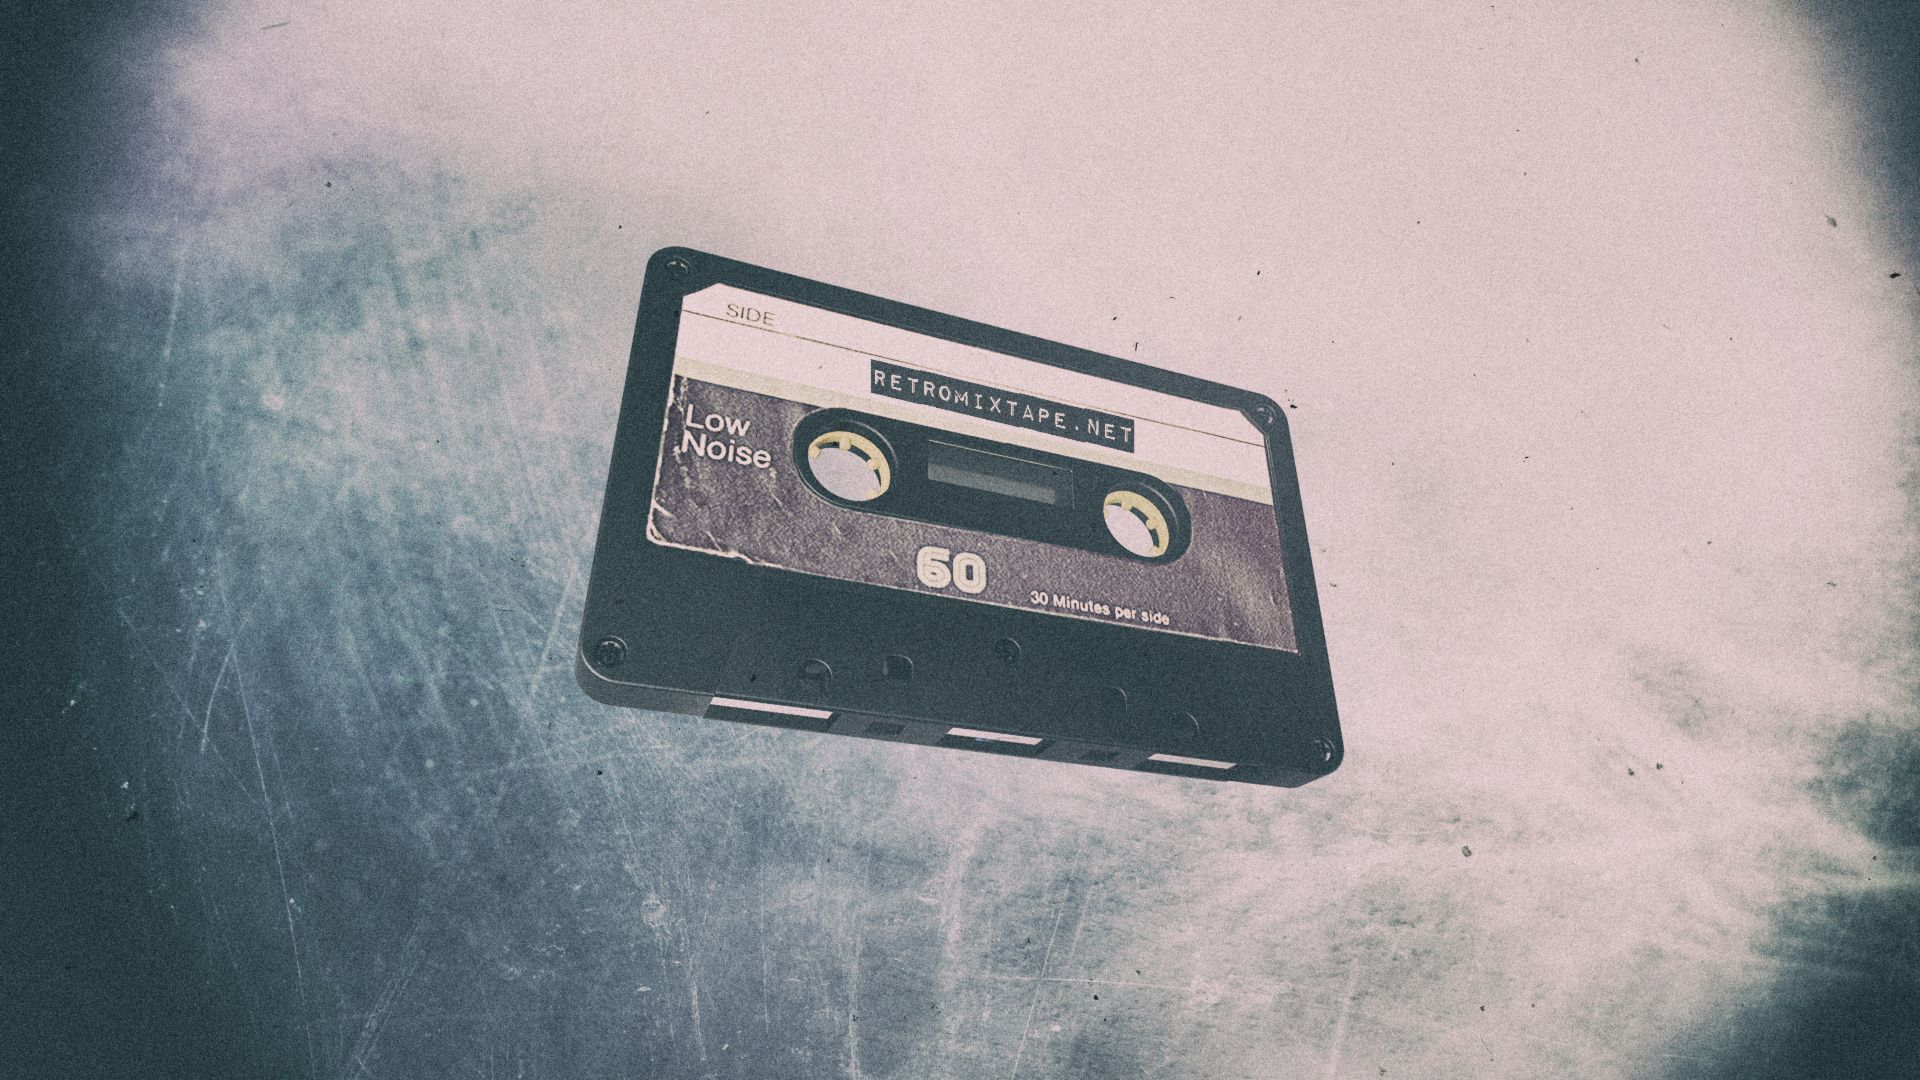 1920x1080 Retro Mix Tape Wallpaper - Retro Mixtape, Hd Wallpapers ...